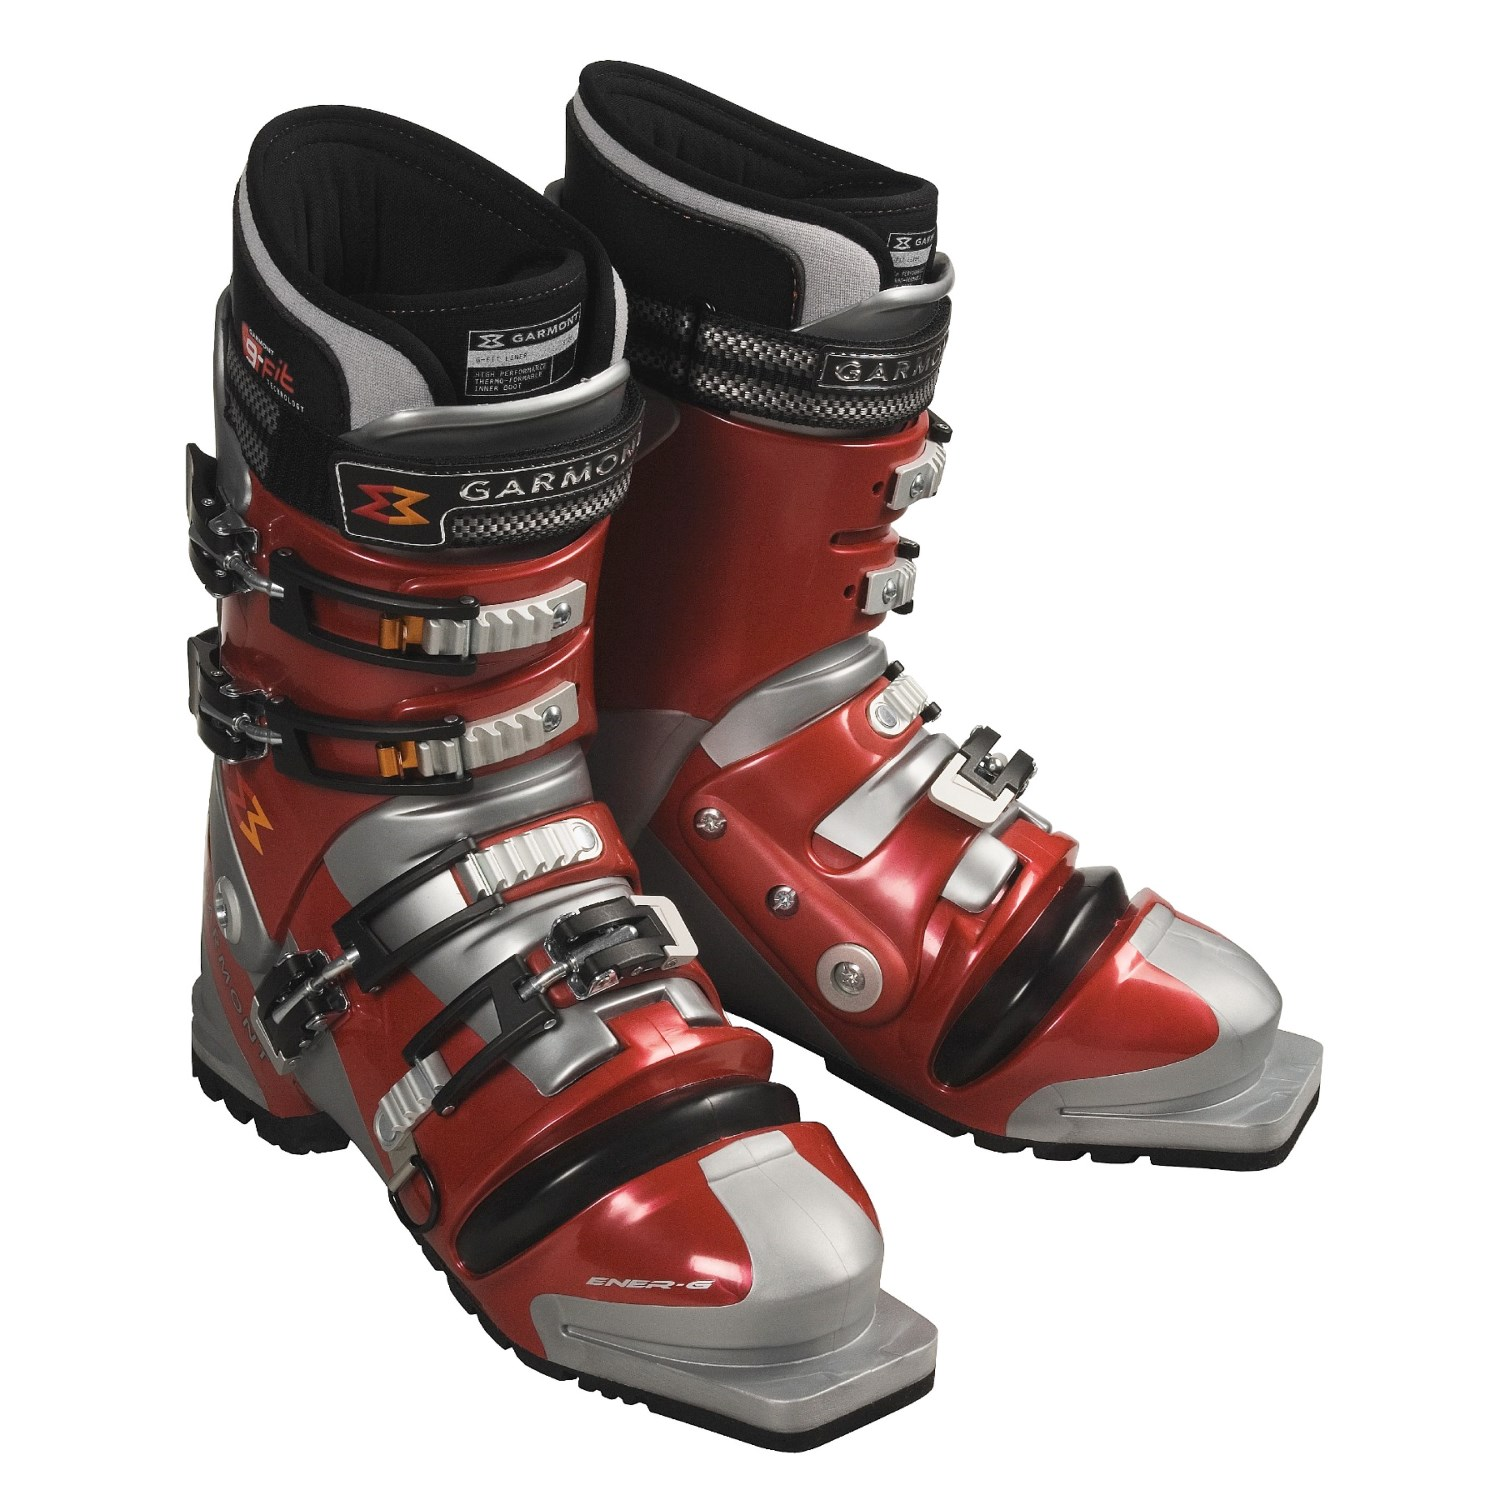 garmont ener g telemark ski boots with g fit liner for